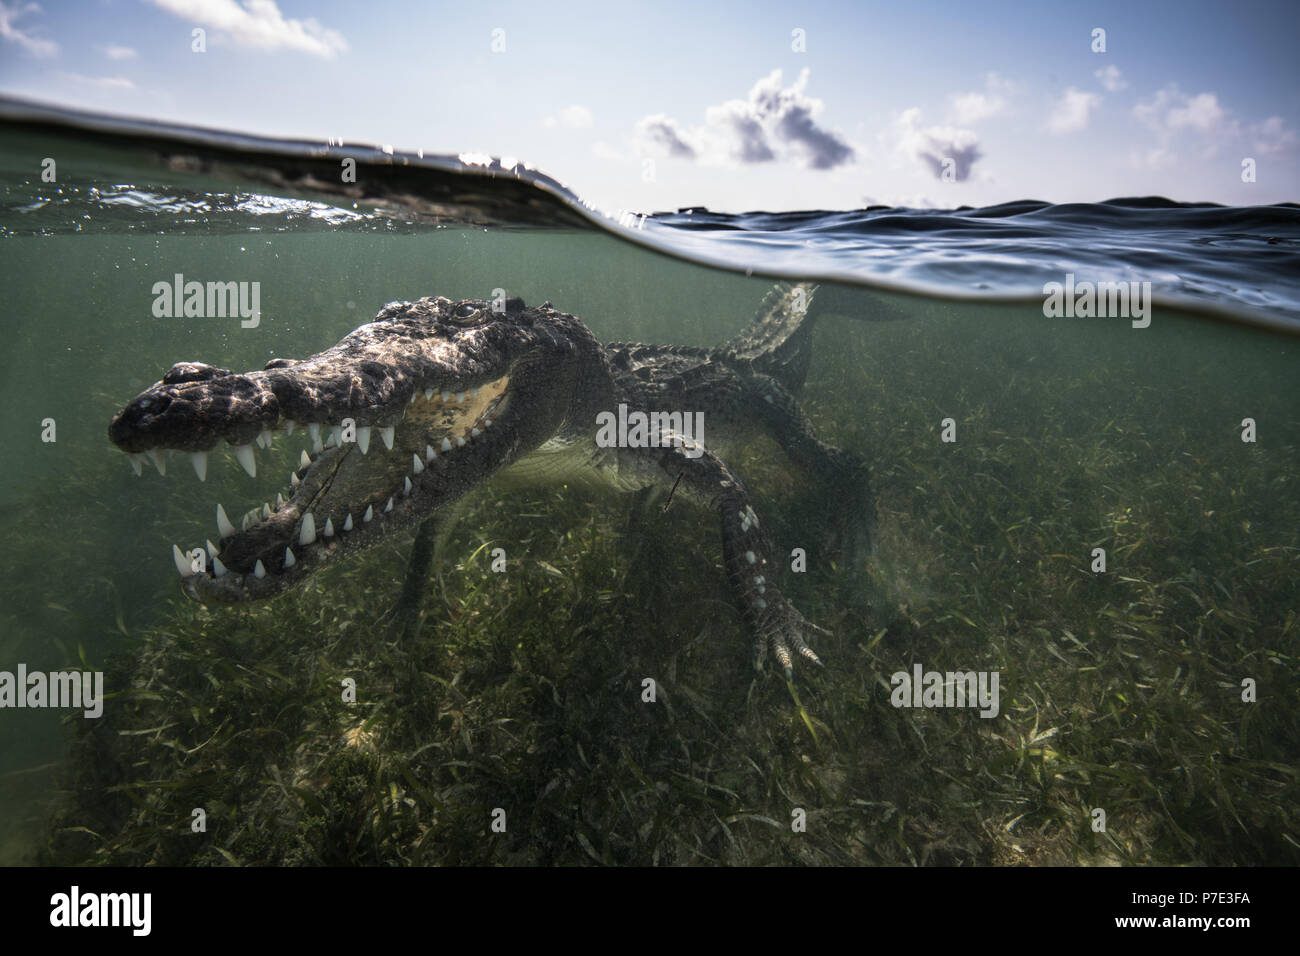 American crocodile (crocodylus acutus) in shallows showing teeth, Chinchorro Banks, Xcalak, Quintana Roo, Mexico - Stock Image